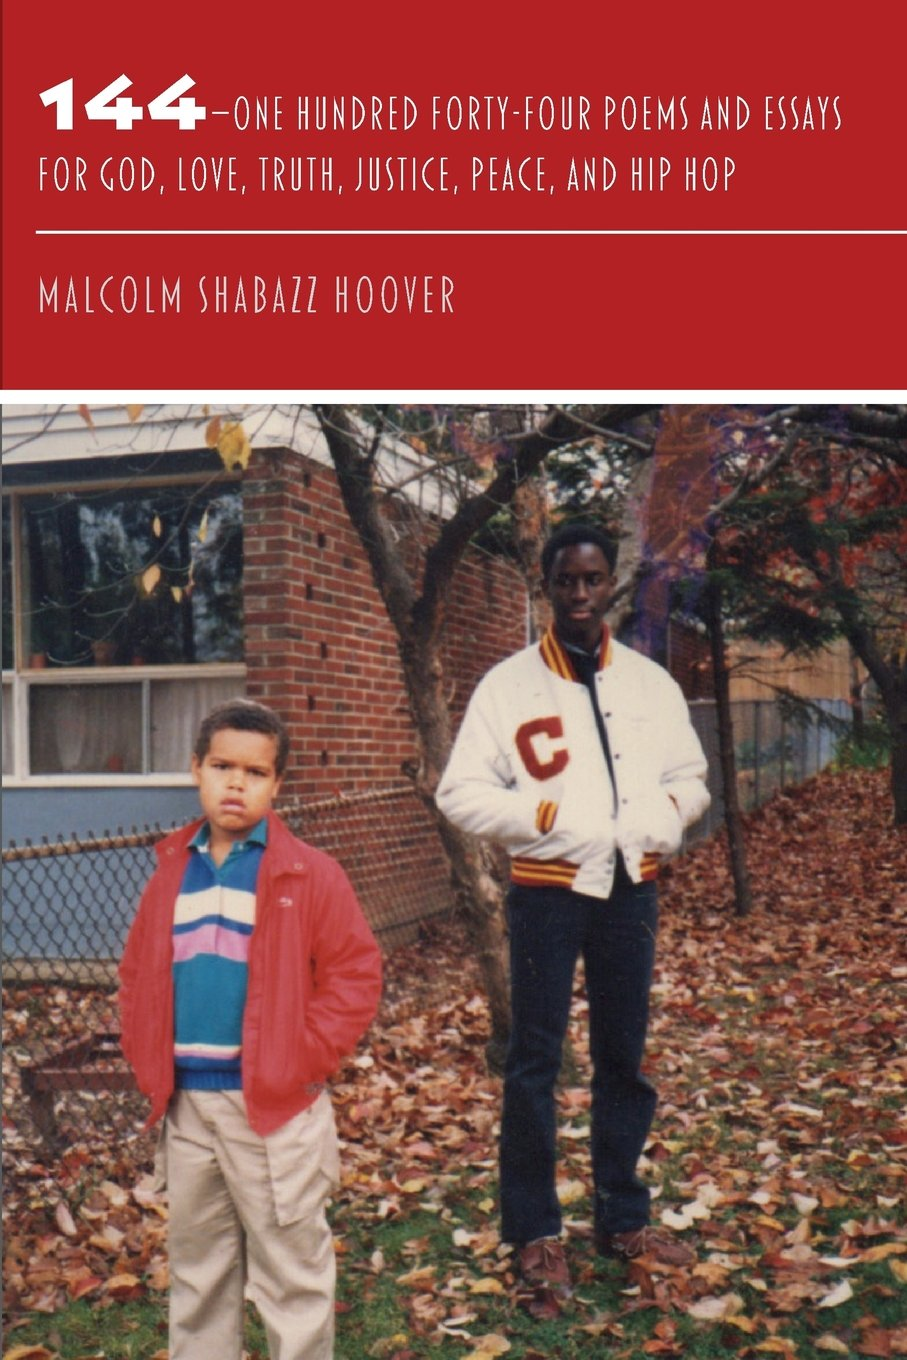 com one hundred forty four poems and essays for god com 144 one hundred forty four poems and essays for god love truth justice peace and hip hop 9780996418461 malcolm shabazz hoover books